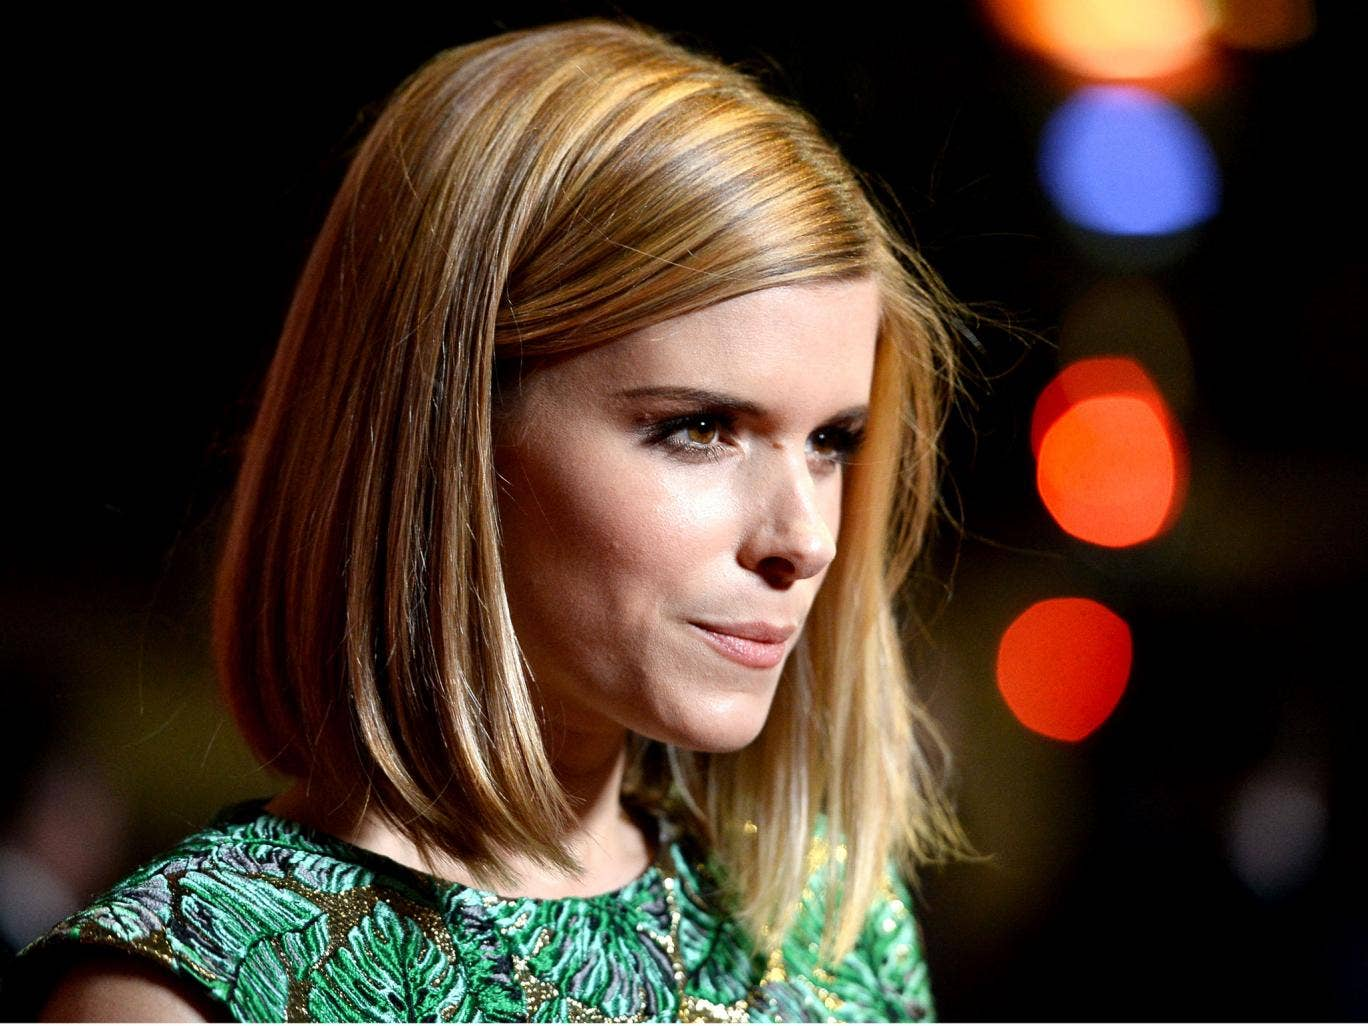 Iron Man 2 and House of Cards actress Kate Mara will play Sue 'The Invisible Woman' Storm in Fox's forthcoming remake of The Fantastic Four